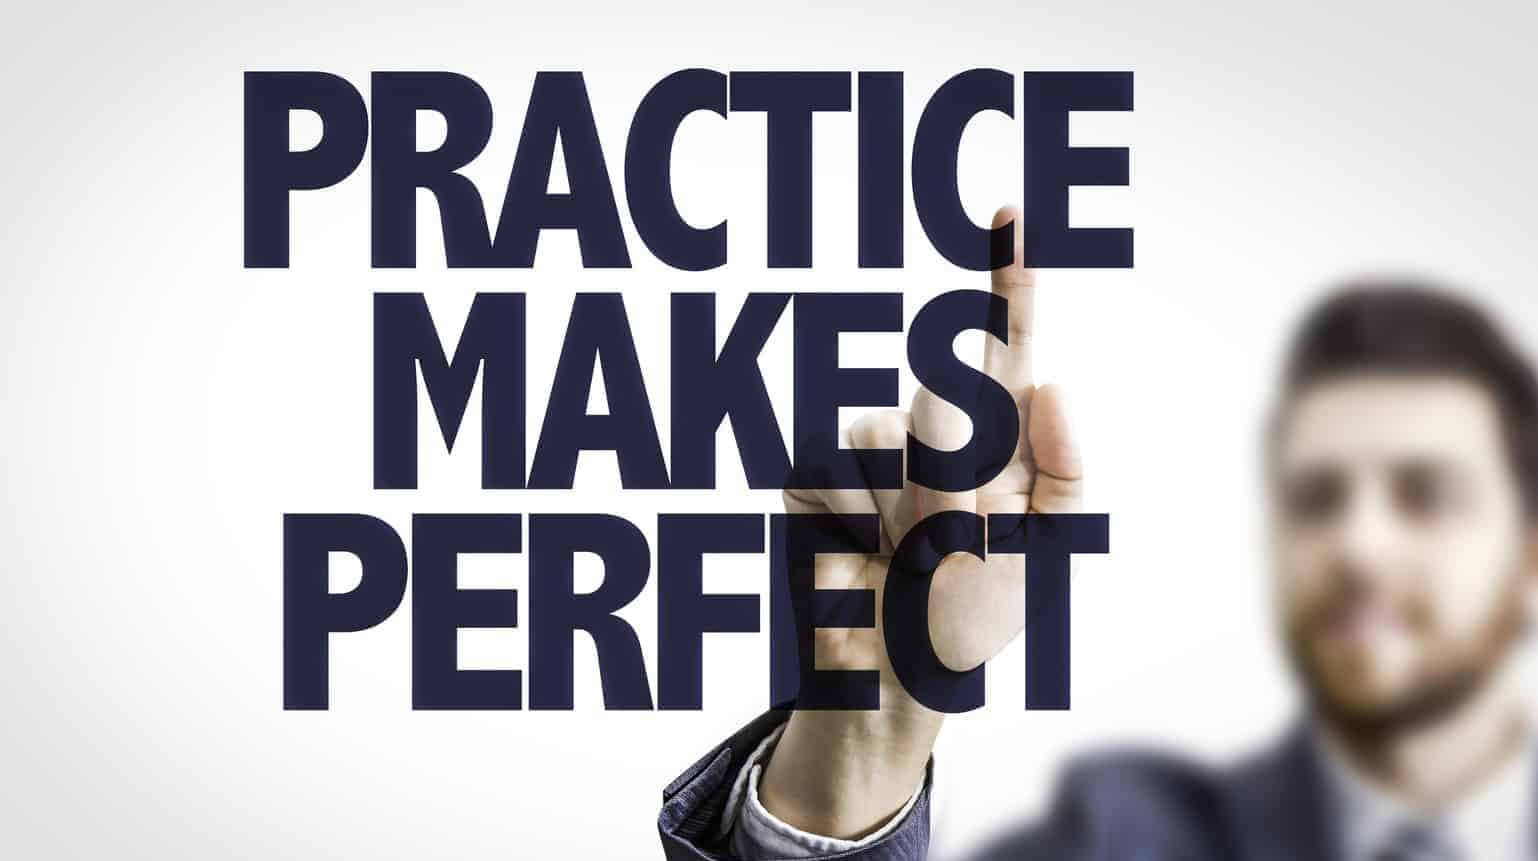 Man behind a text that says practice makes perfect